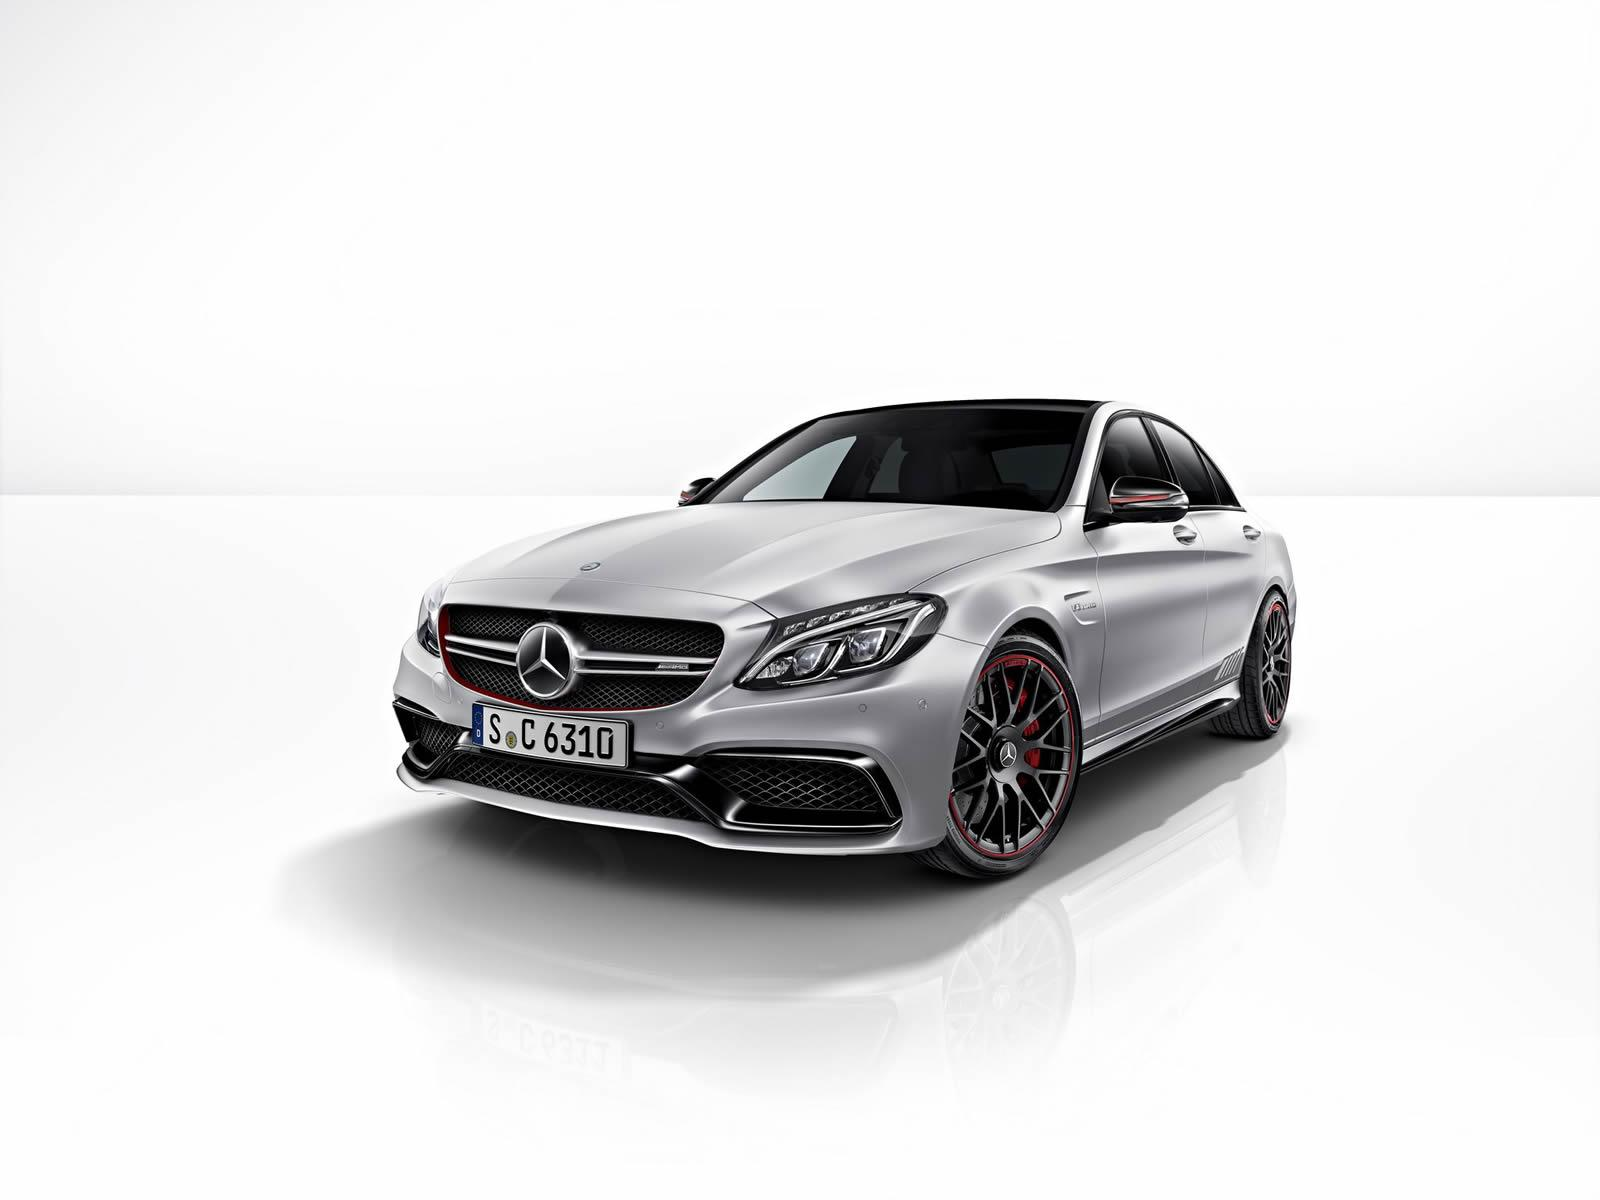 official 2015 mercedes amg c63 edition 1 gtspirit. Black Bedroom Furniture Sets. Home Design Ideas